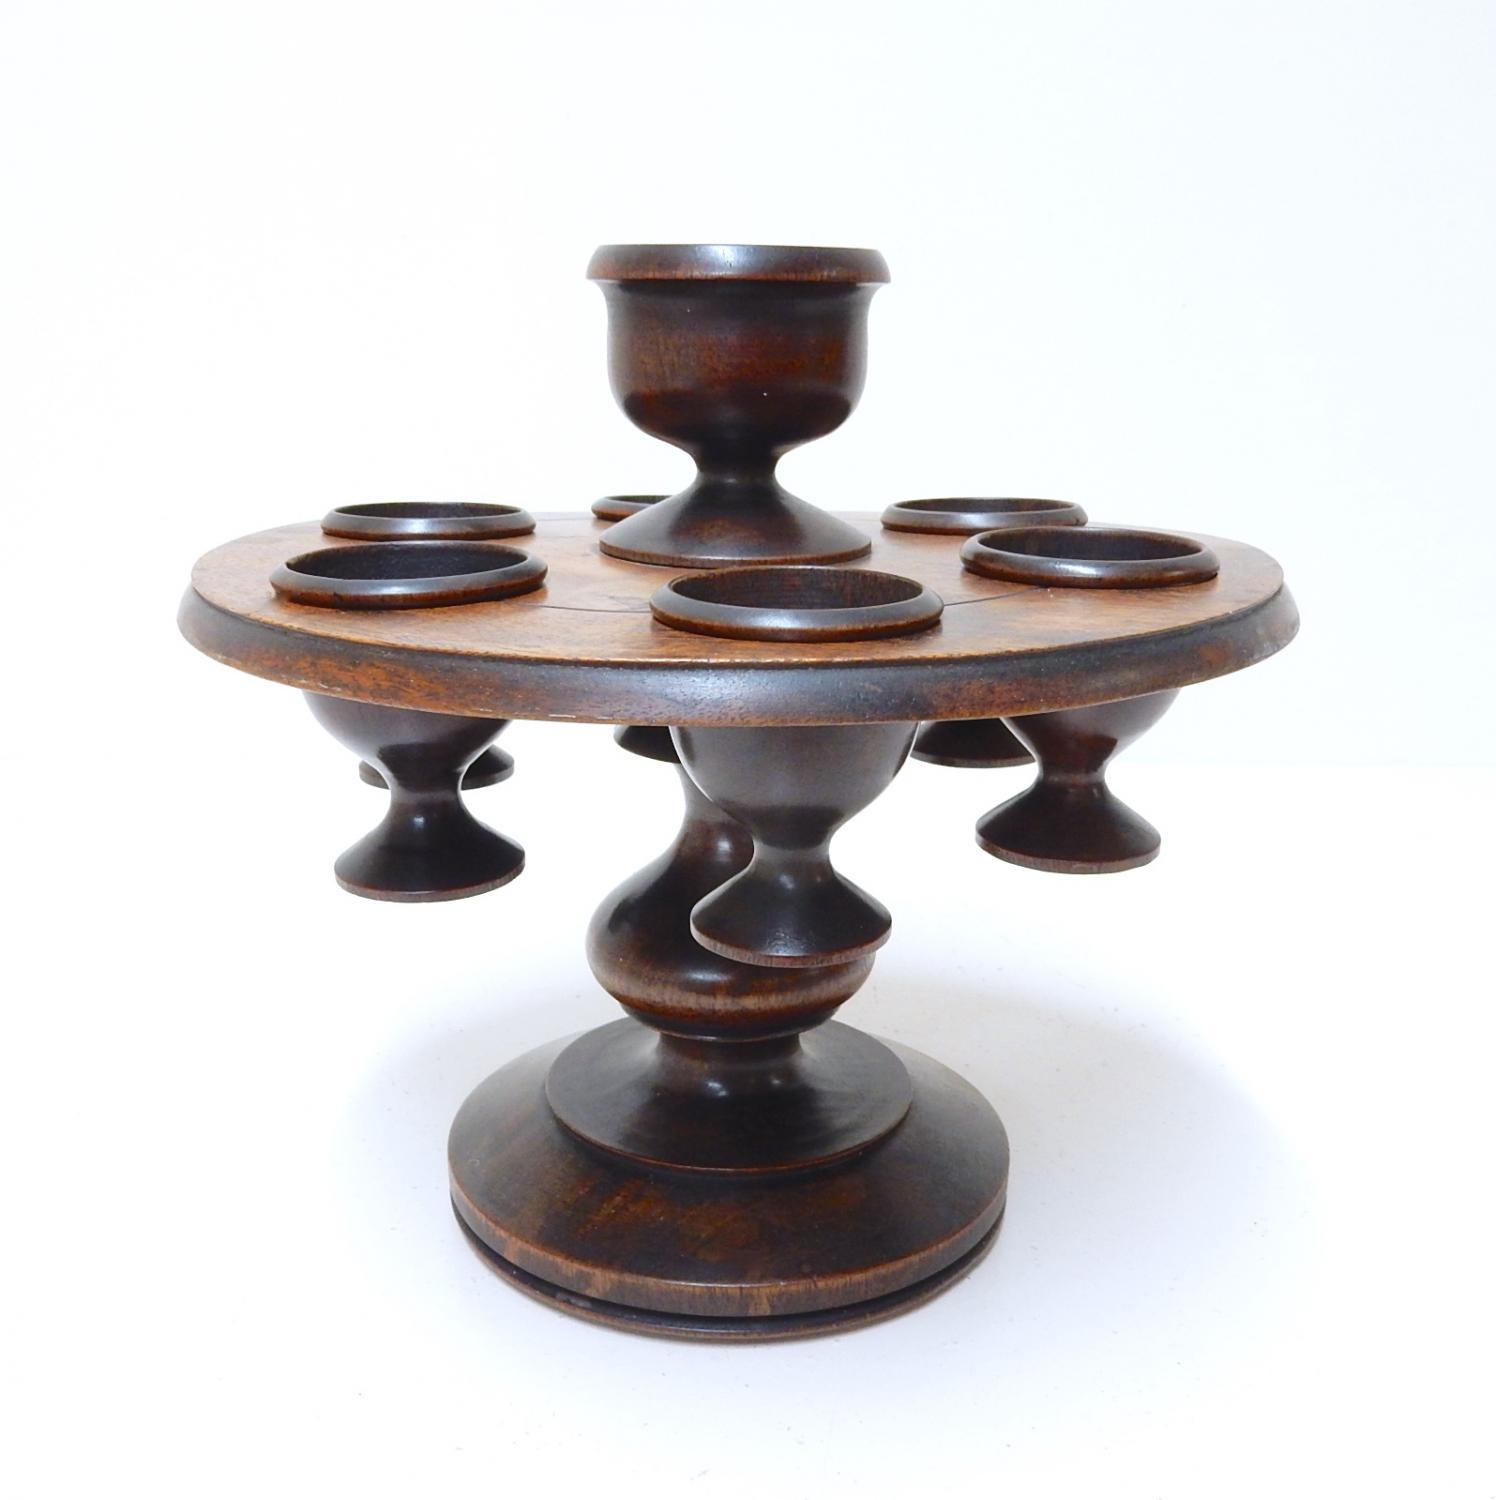 Treen Egg Cup & Stand